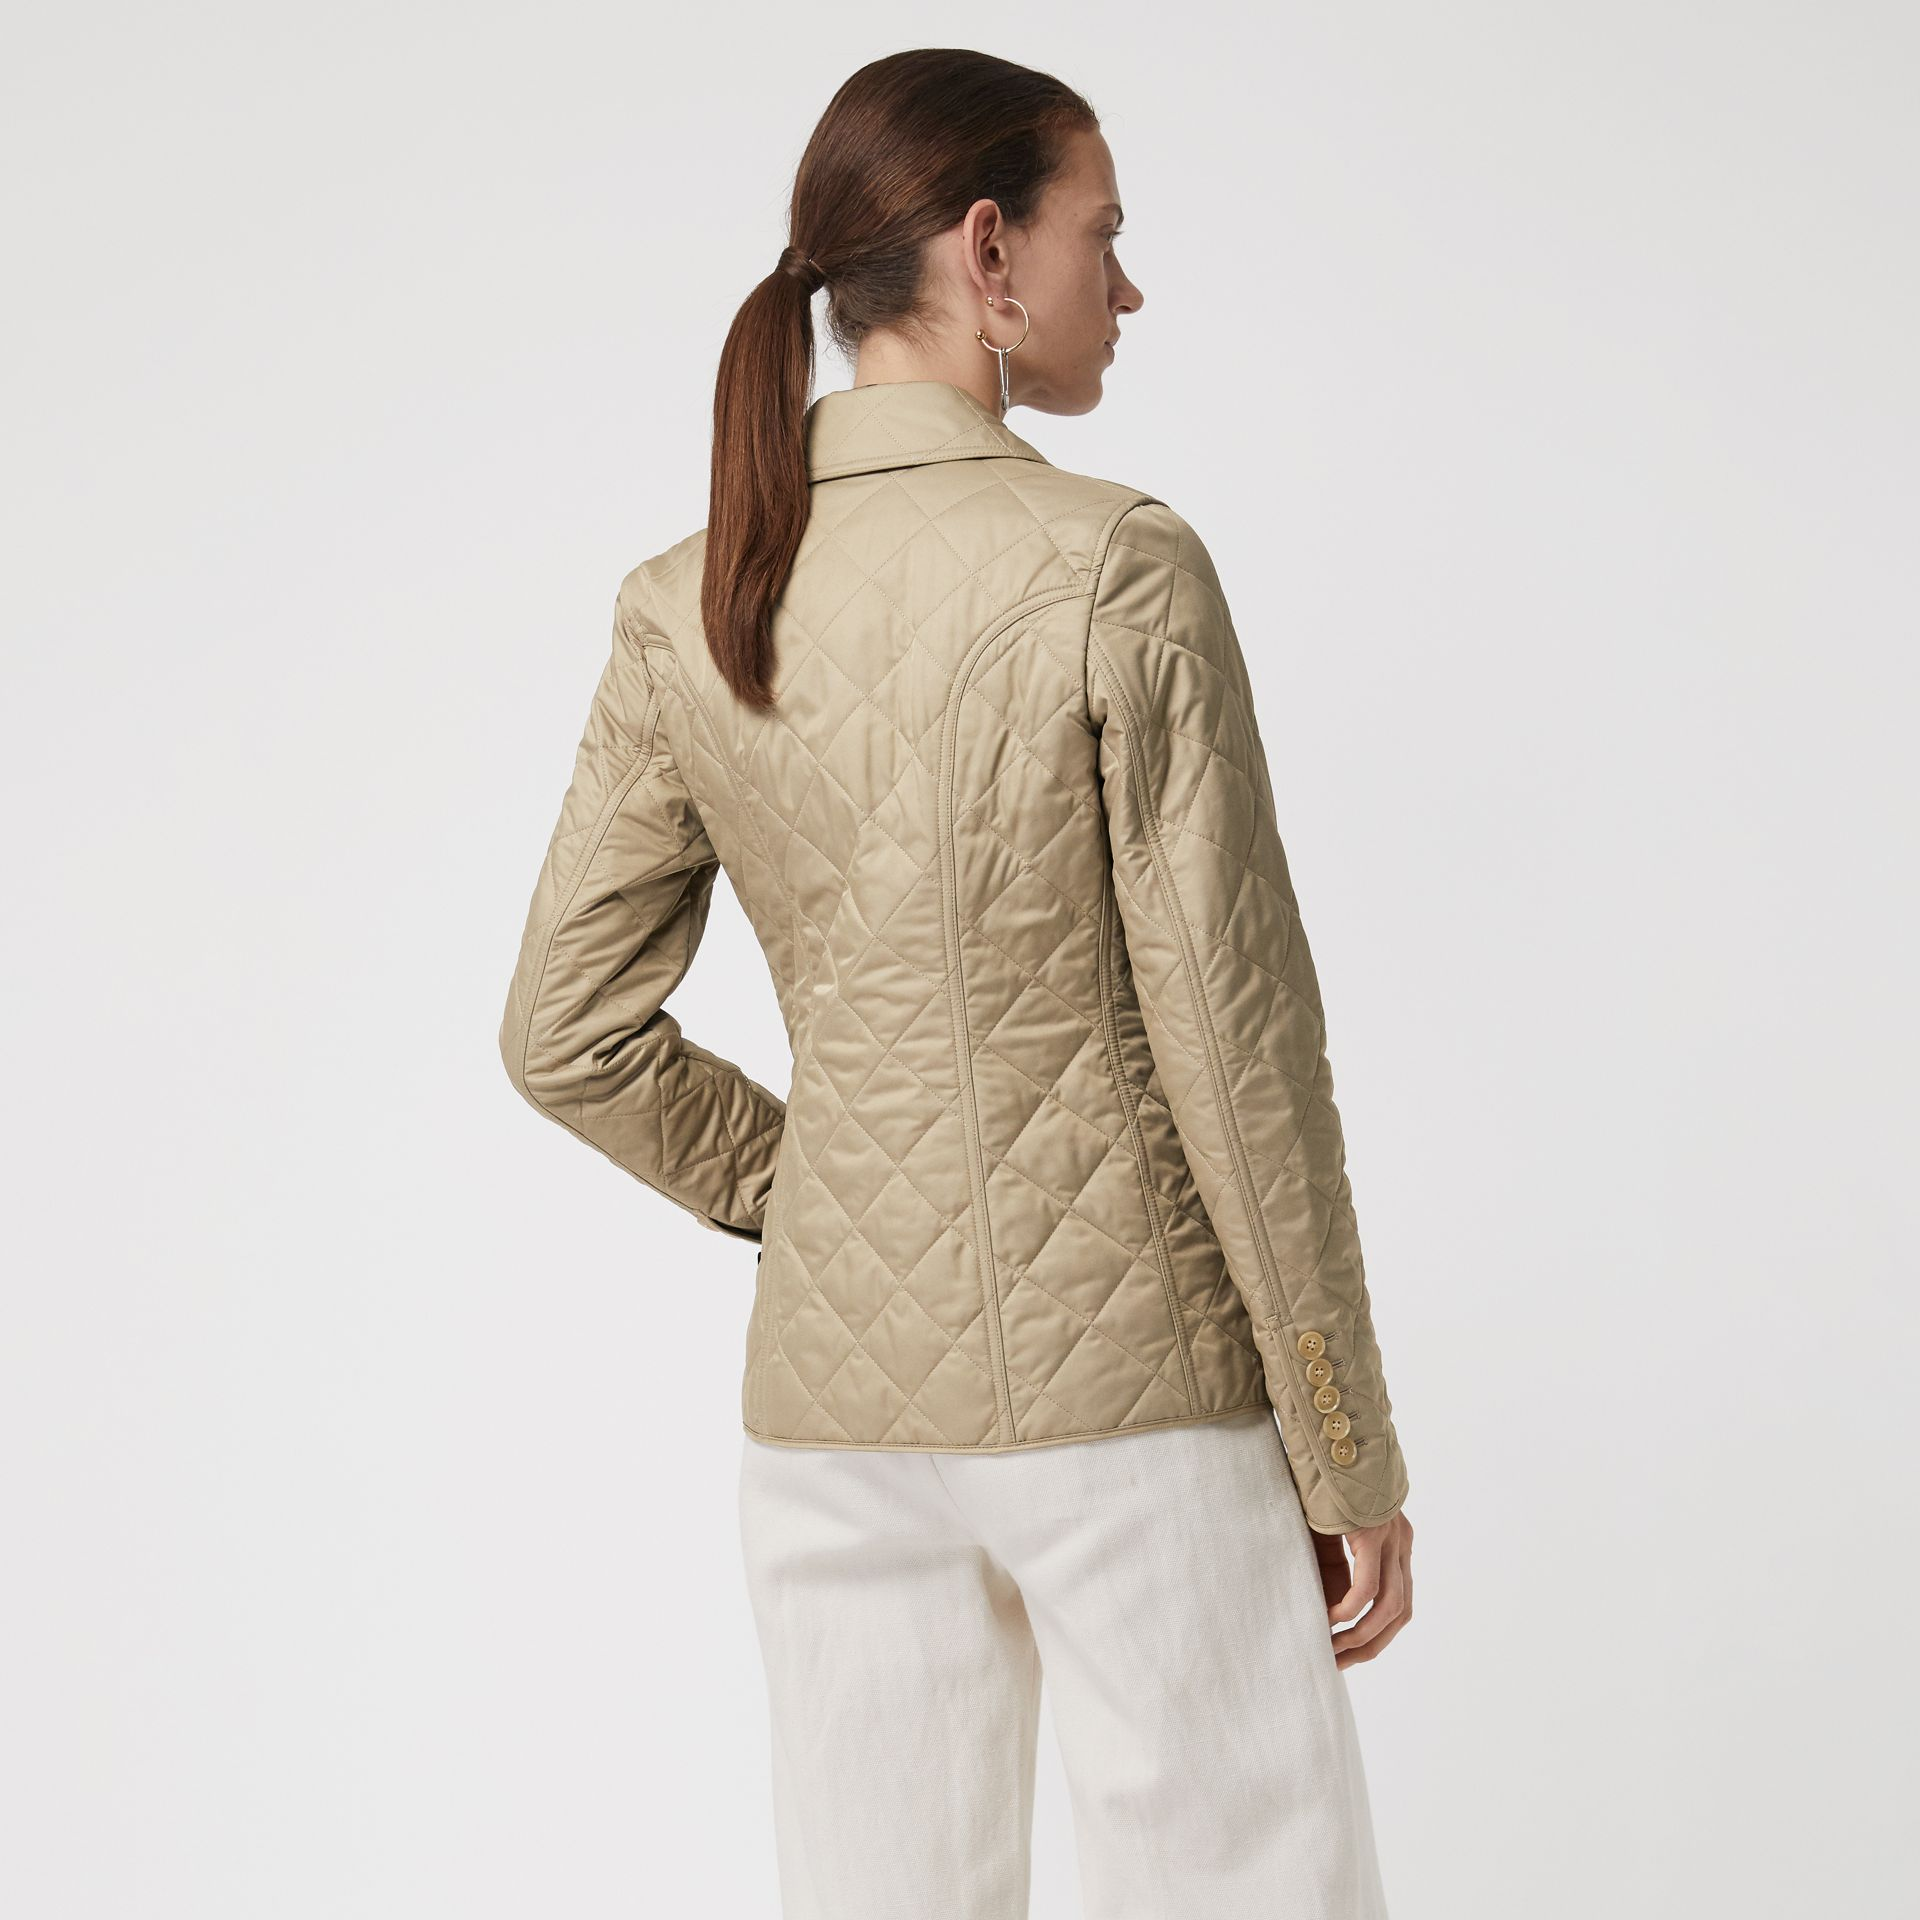 Diamond Quilted Jacket in Canvas - Women | Burberry Hong Kong S.A.R - gallery image 2